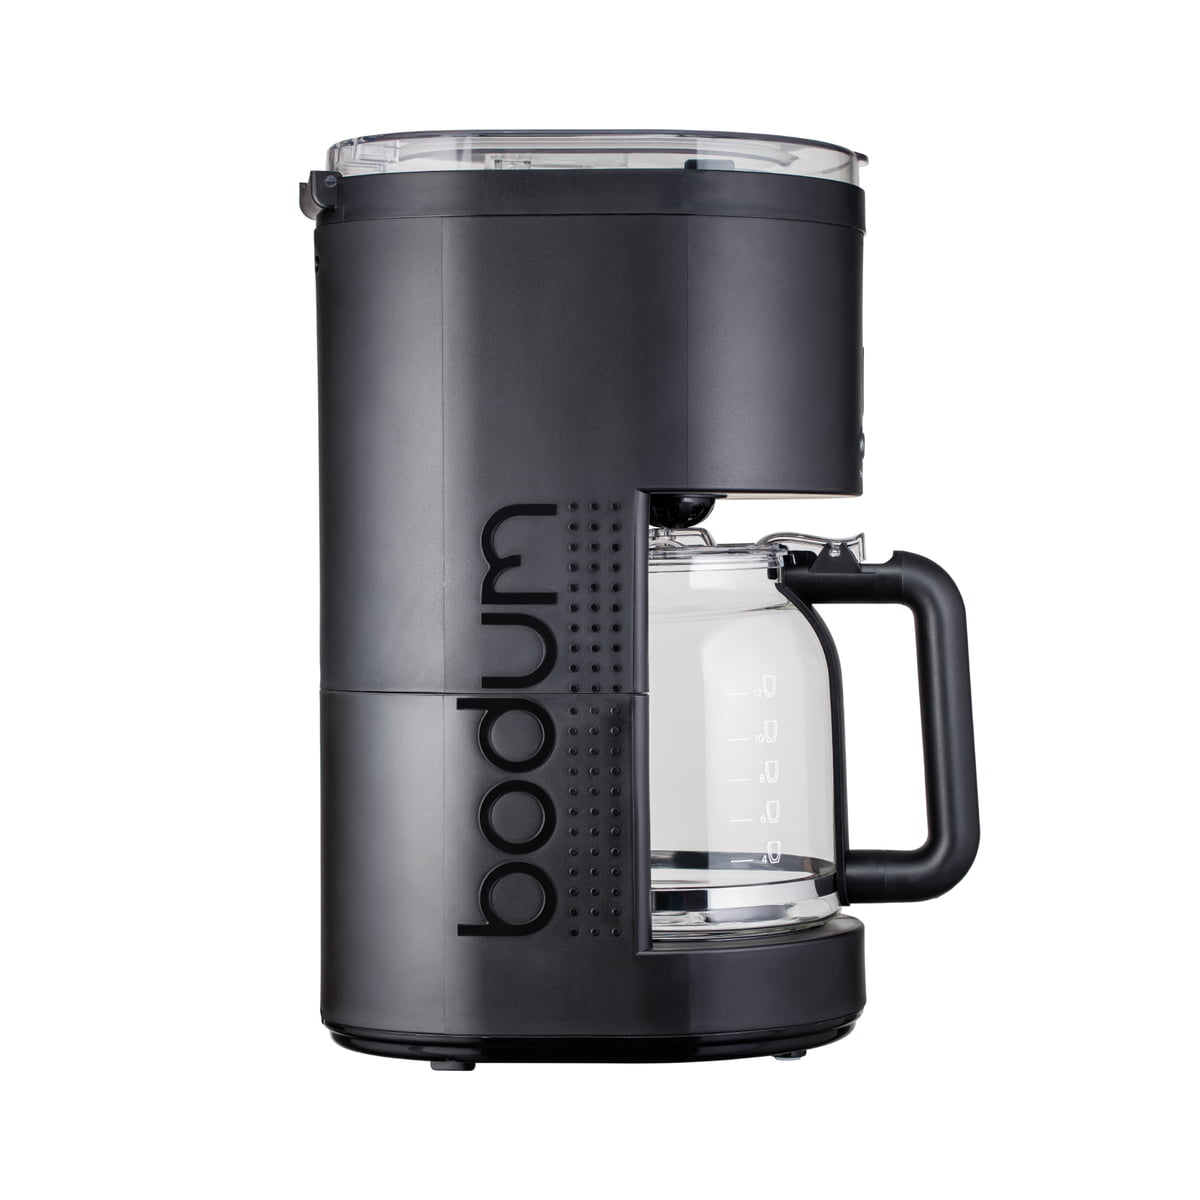 bistro electric coffee maker by bodum. Black Bedroom Furniture Sets. Home Design Ideas